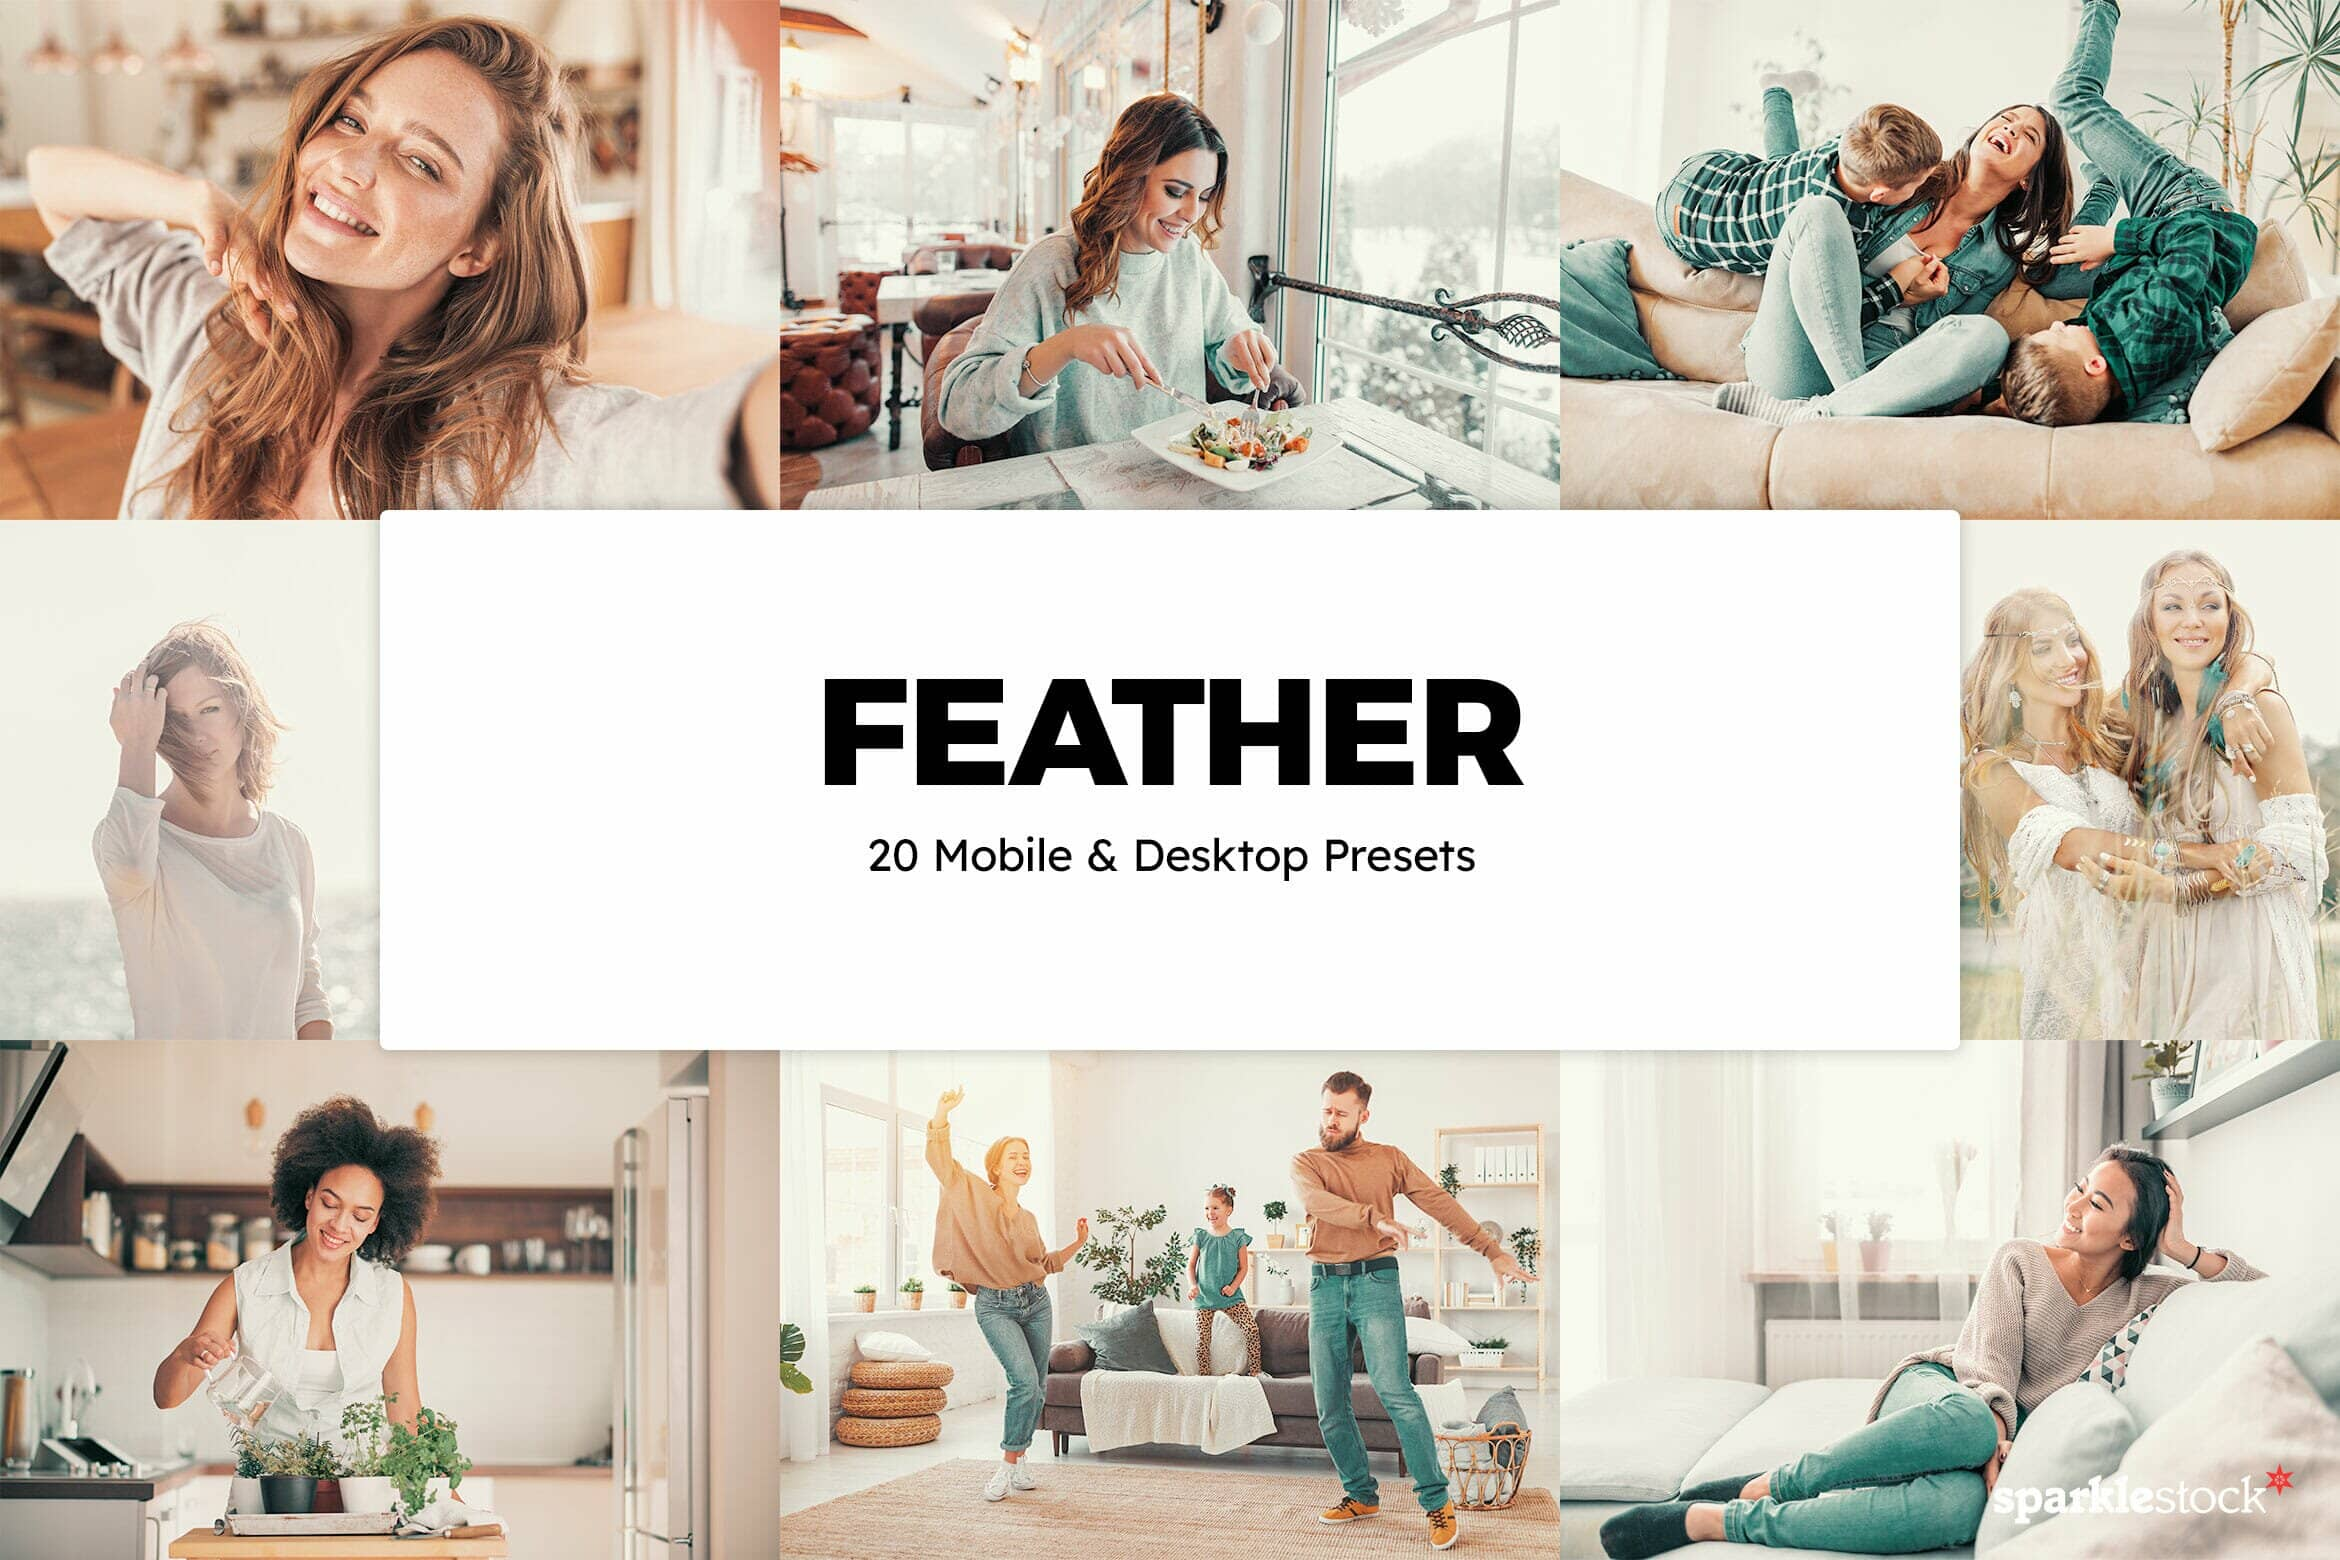 8 Free Feather Lightroom Presets and LUTs